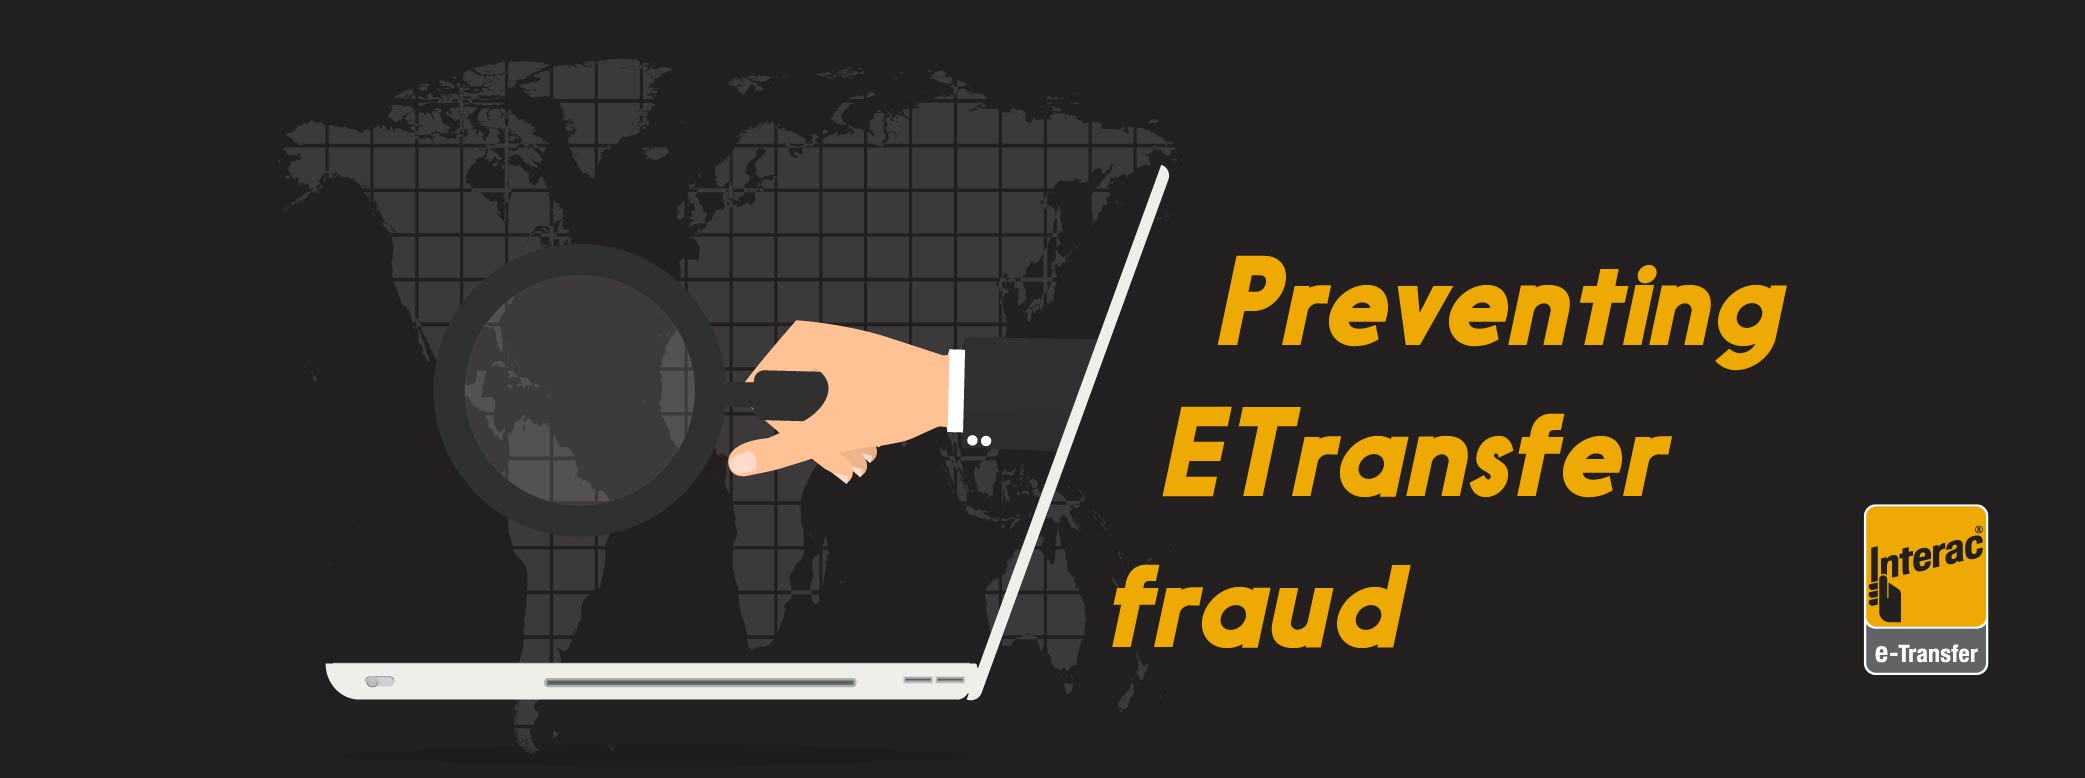 Preventing etransfer fraud